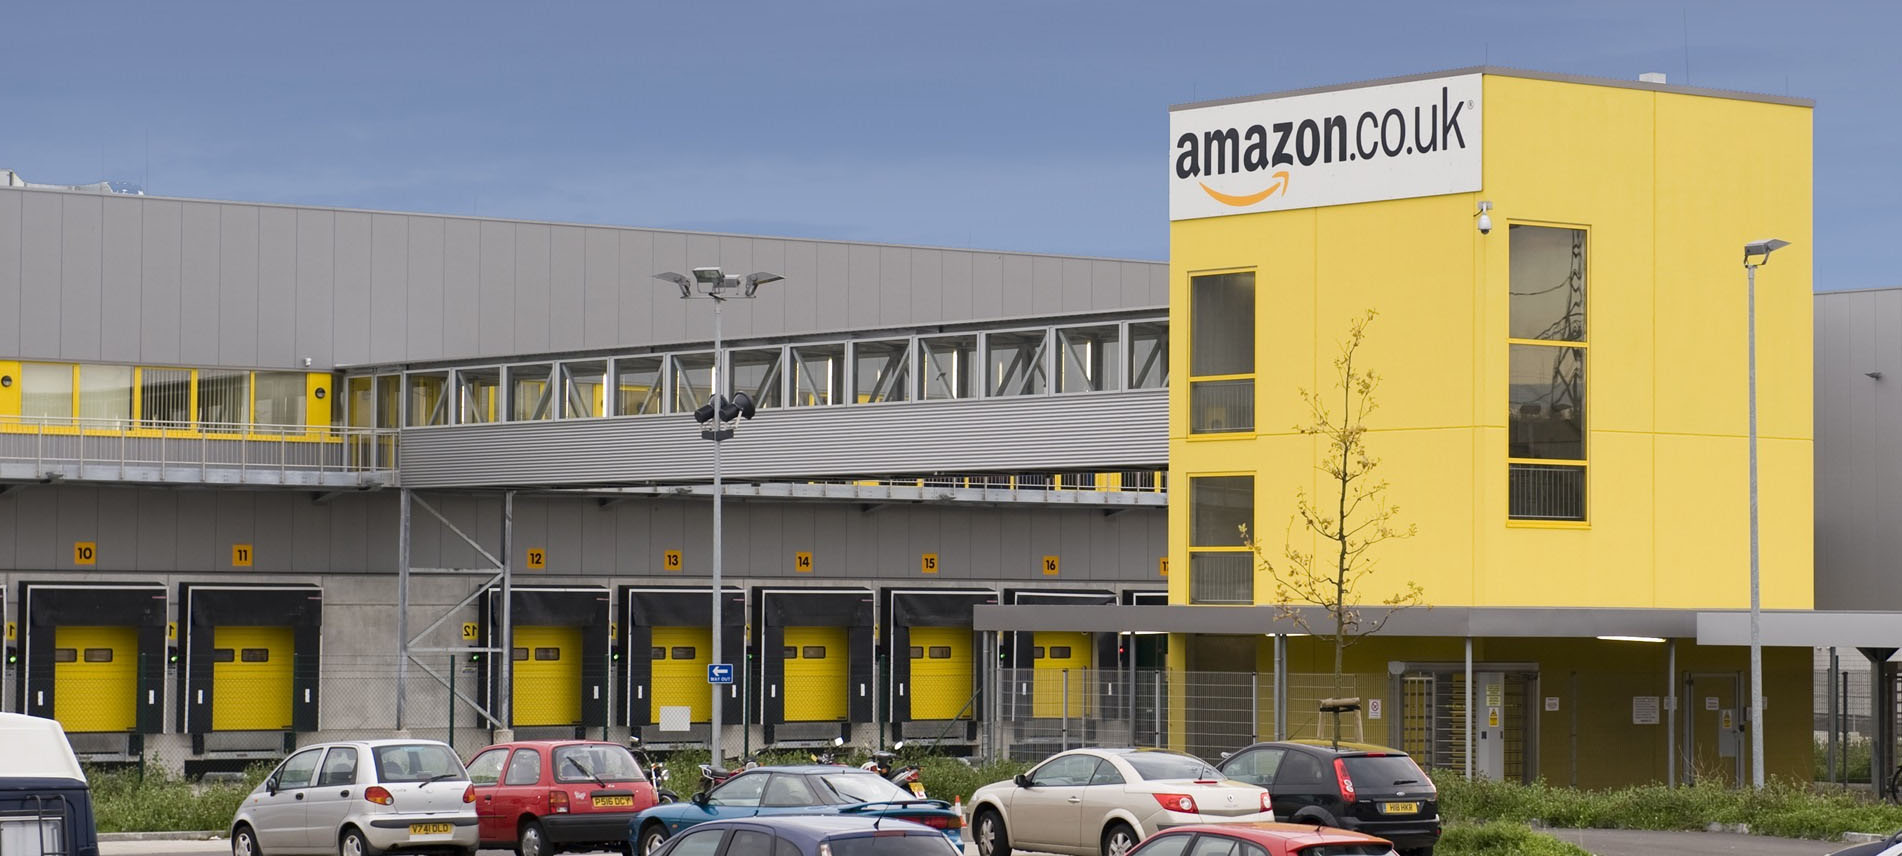 Amazon FBA Centre